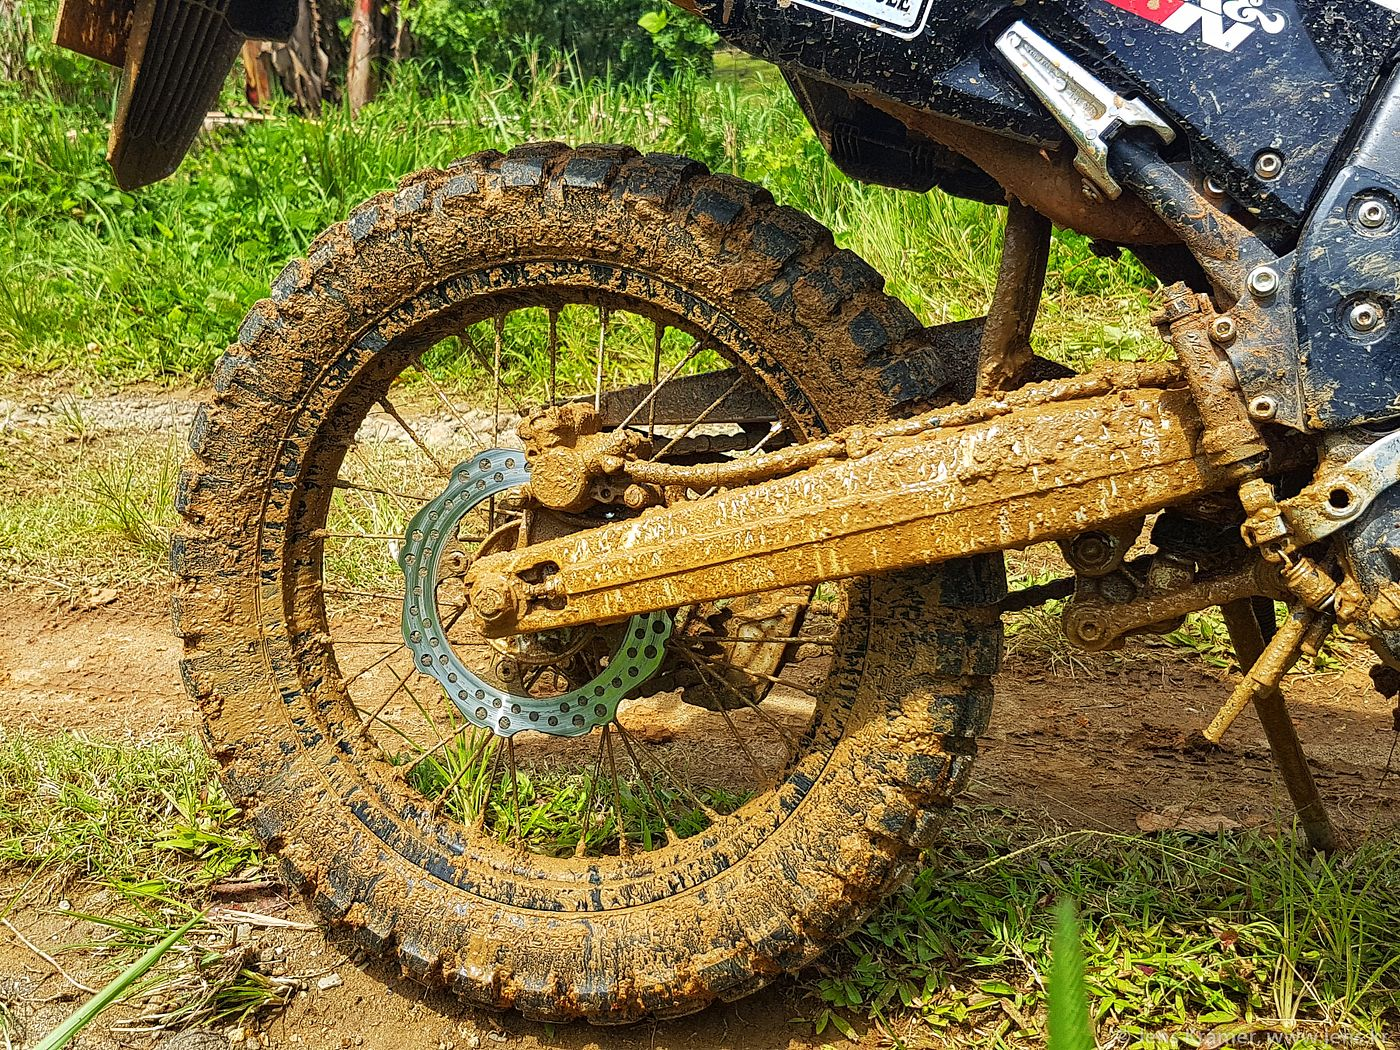 Shinko E-805 after 4,000km - still quite capable in deep mud